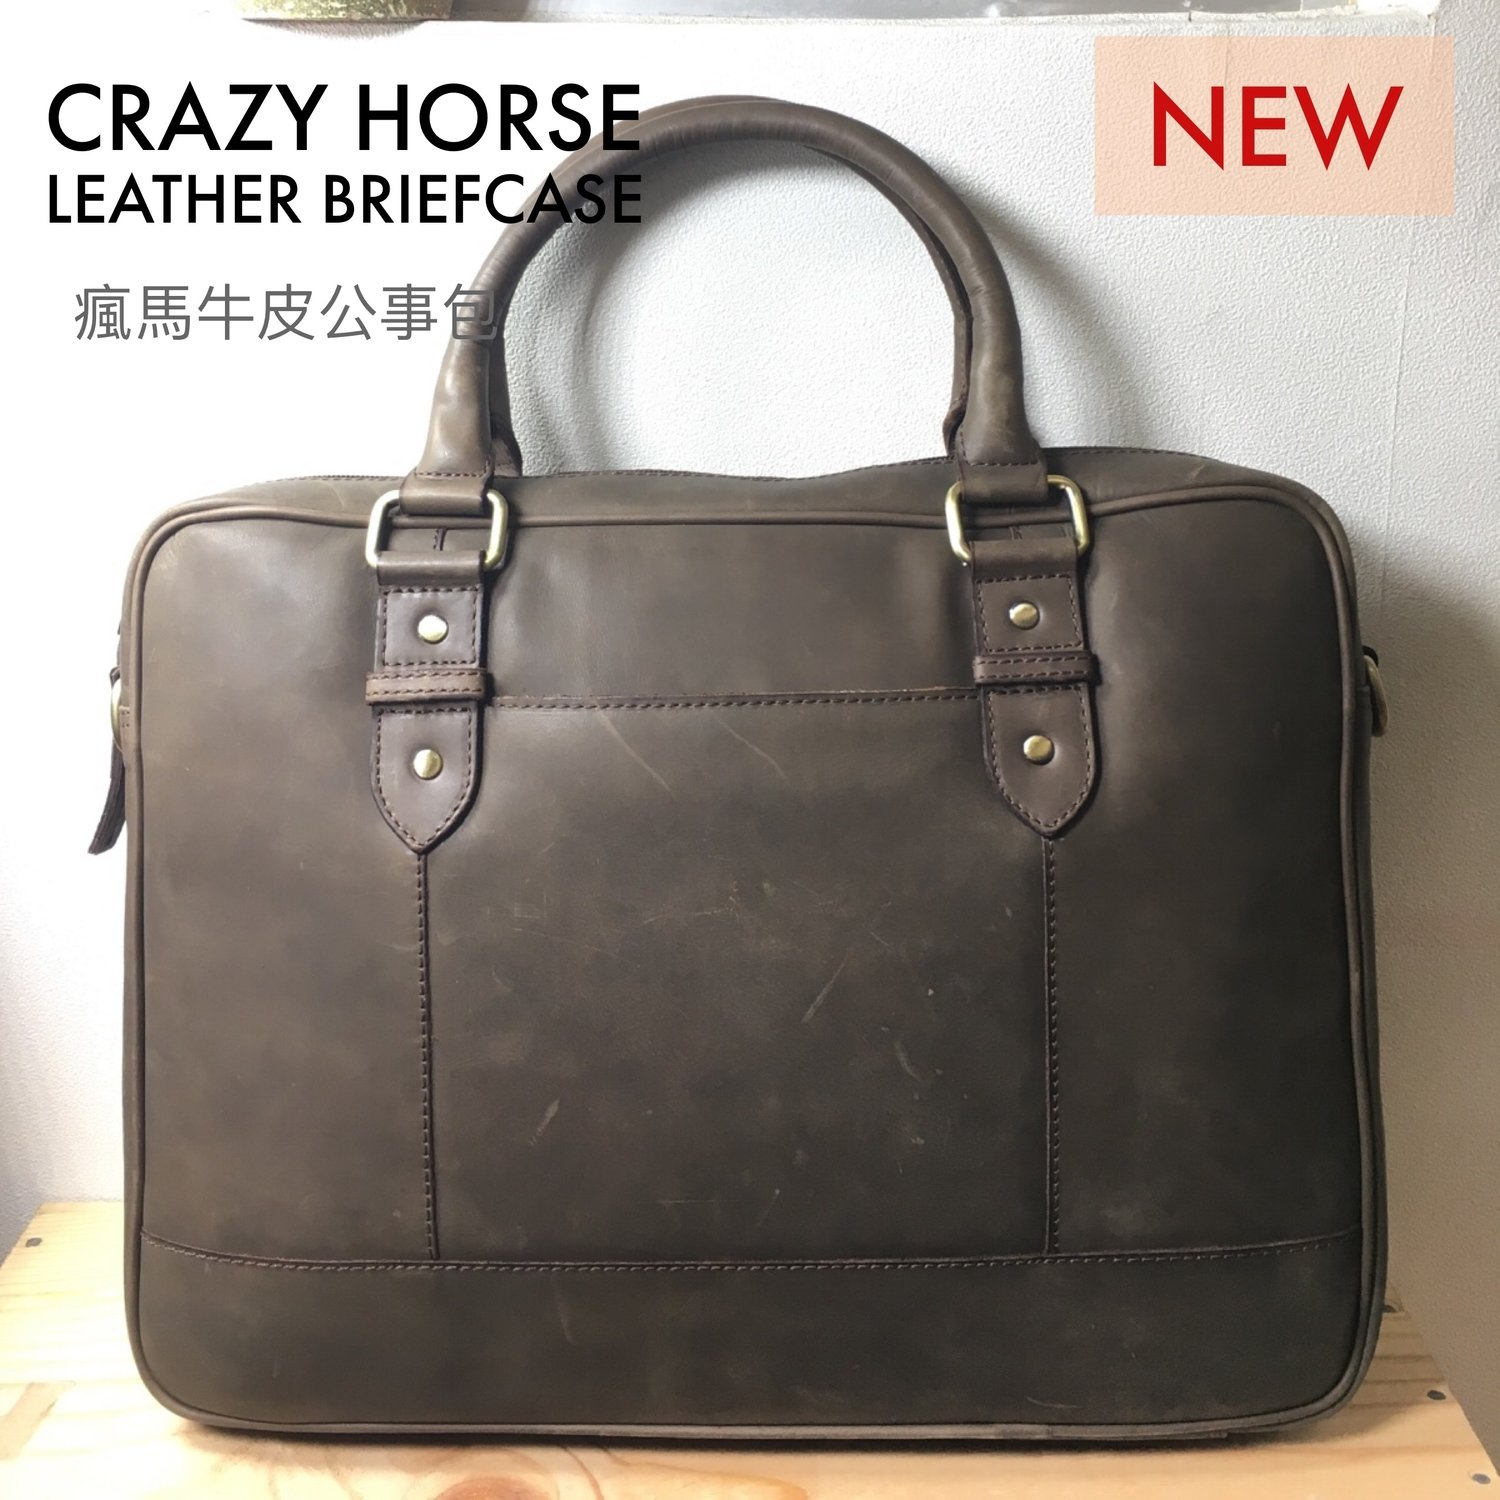 牛皮公事包 Cow Leather Briefcase BM006